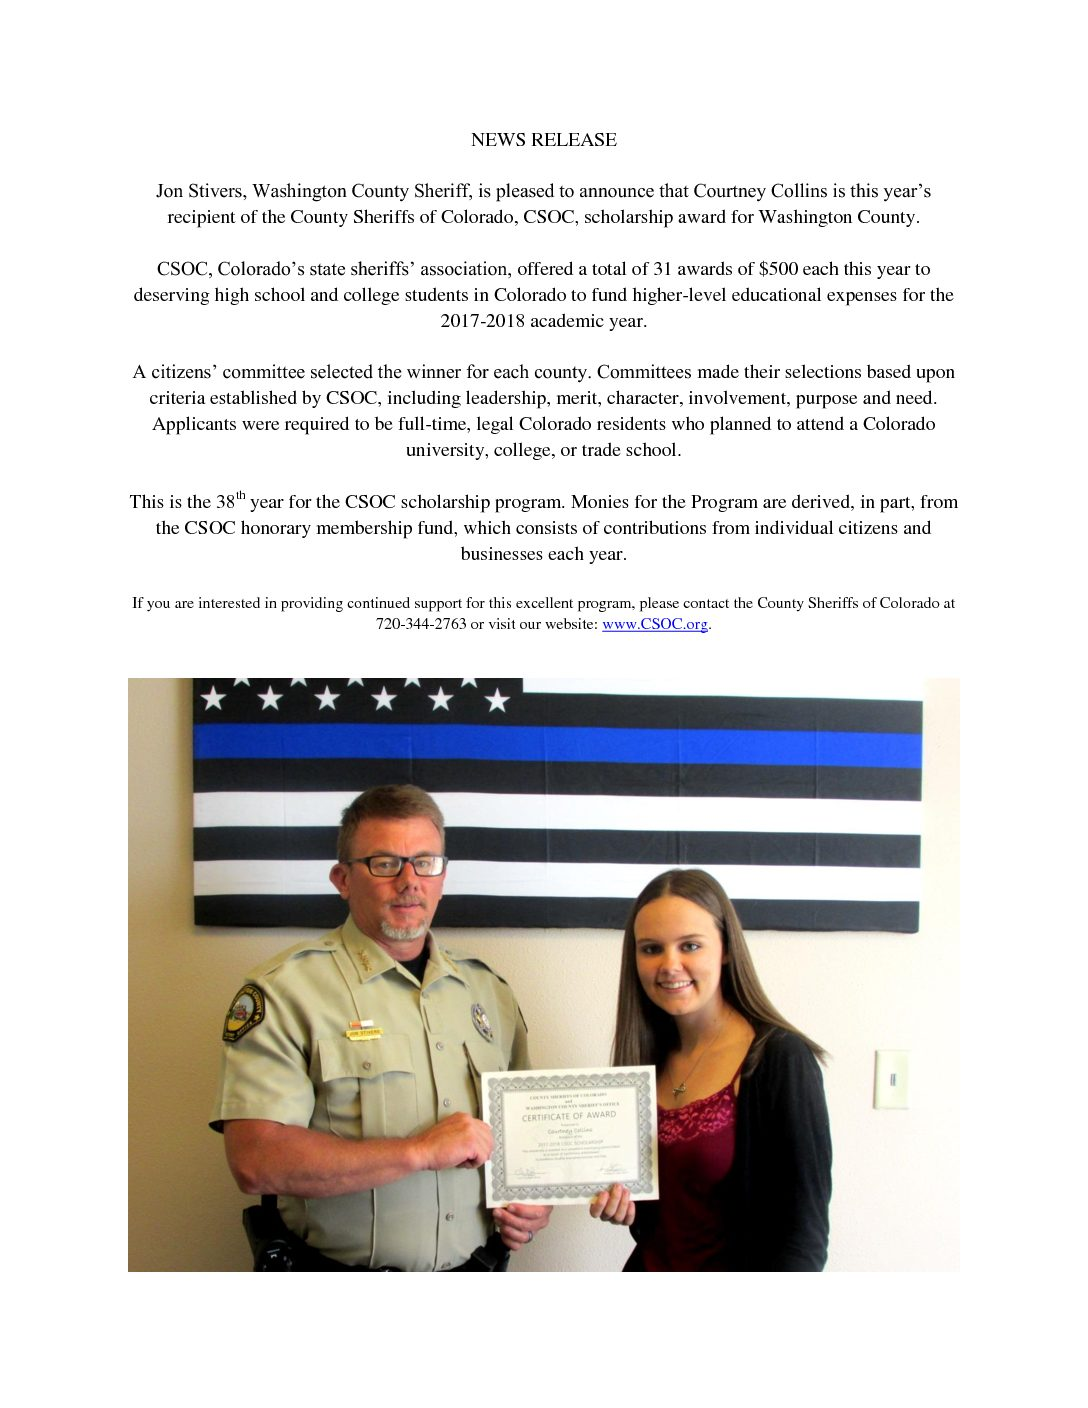 Scholarship news release